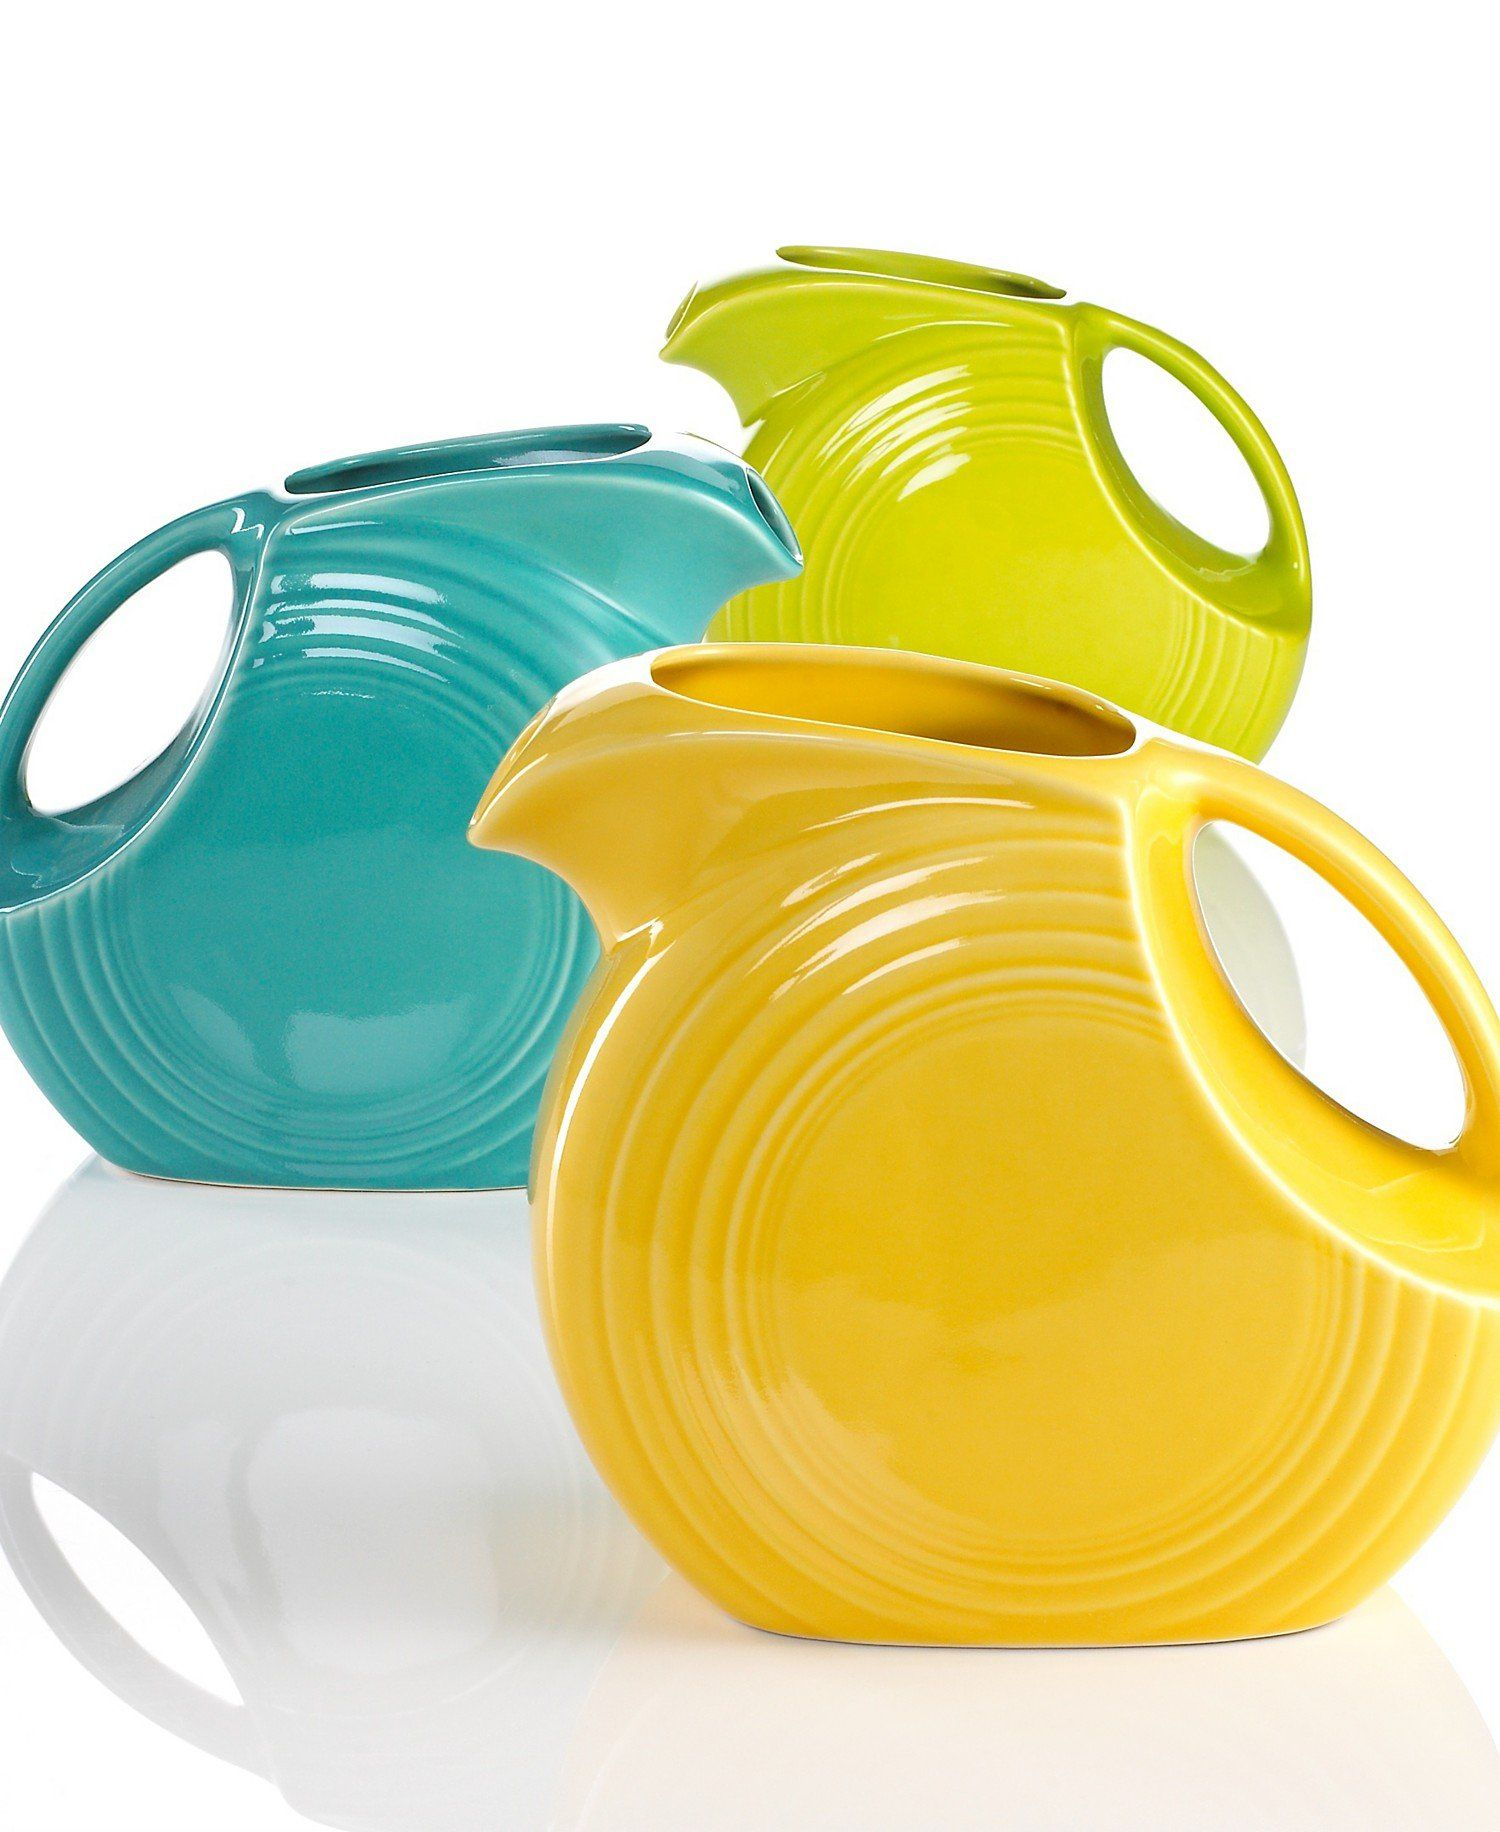 Amazon.com | Fiesta 67-1/4-Ounce Large Disk Pitcher, Shamrock: Fiesta Ware Pitchers: Carafes & Pitchers